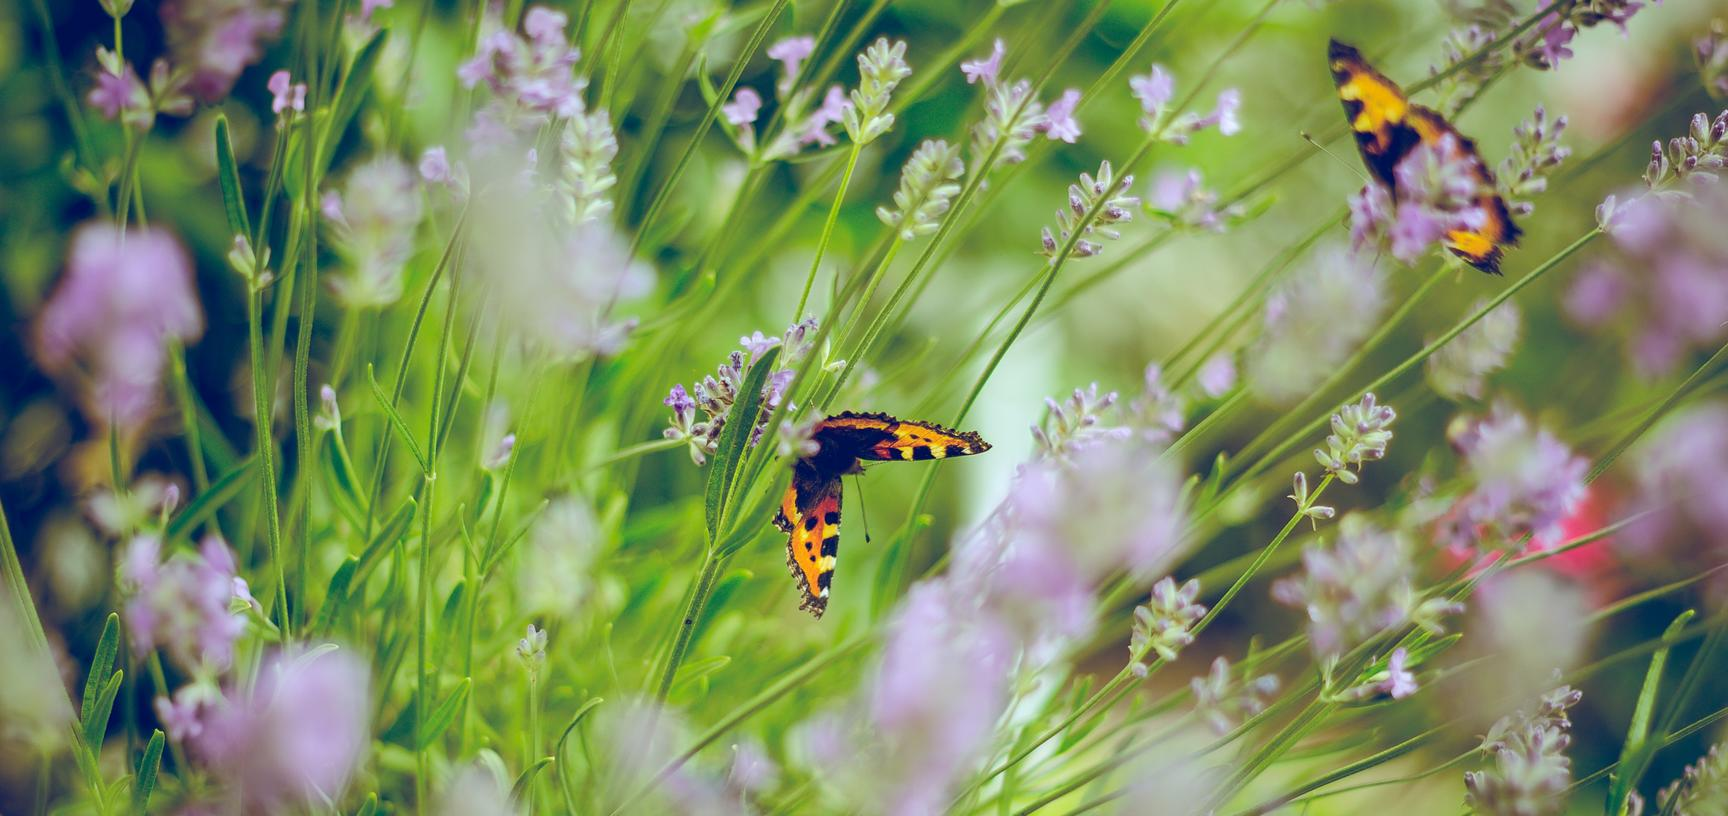 flowers and butterflies photo by emiel molenaar on unsplash